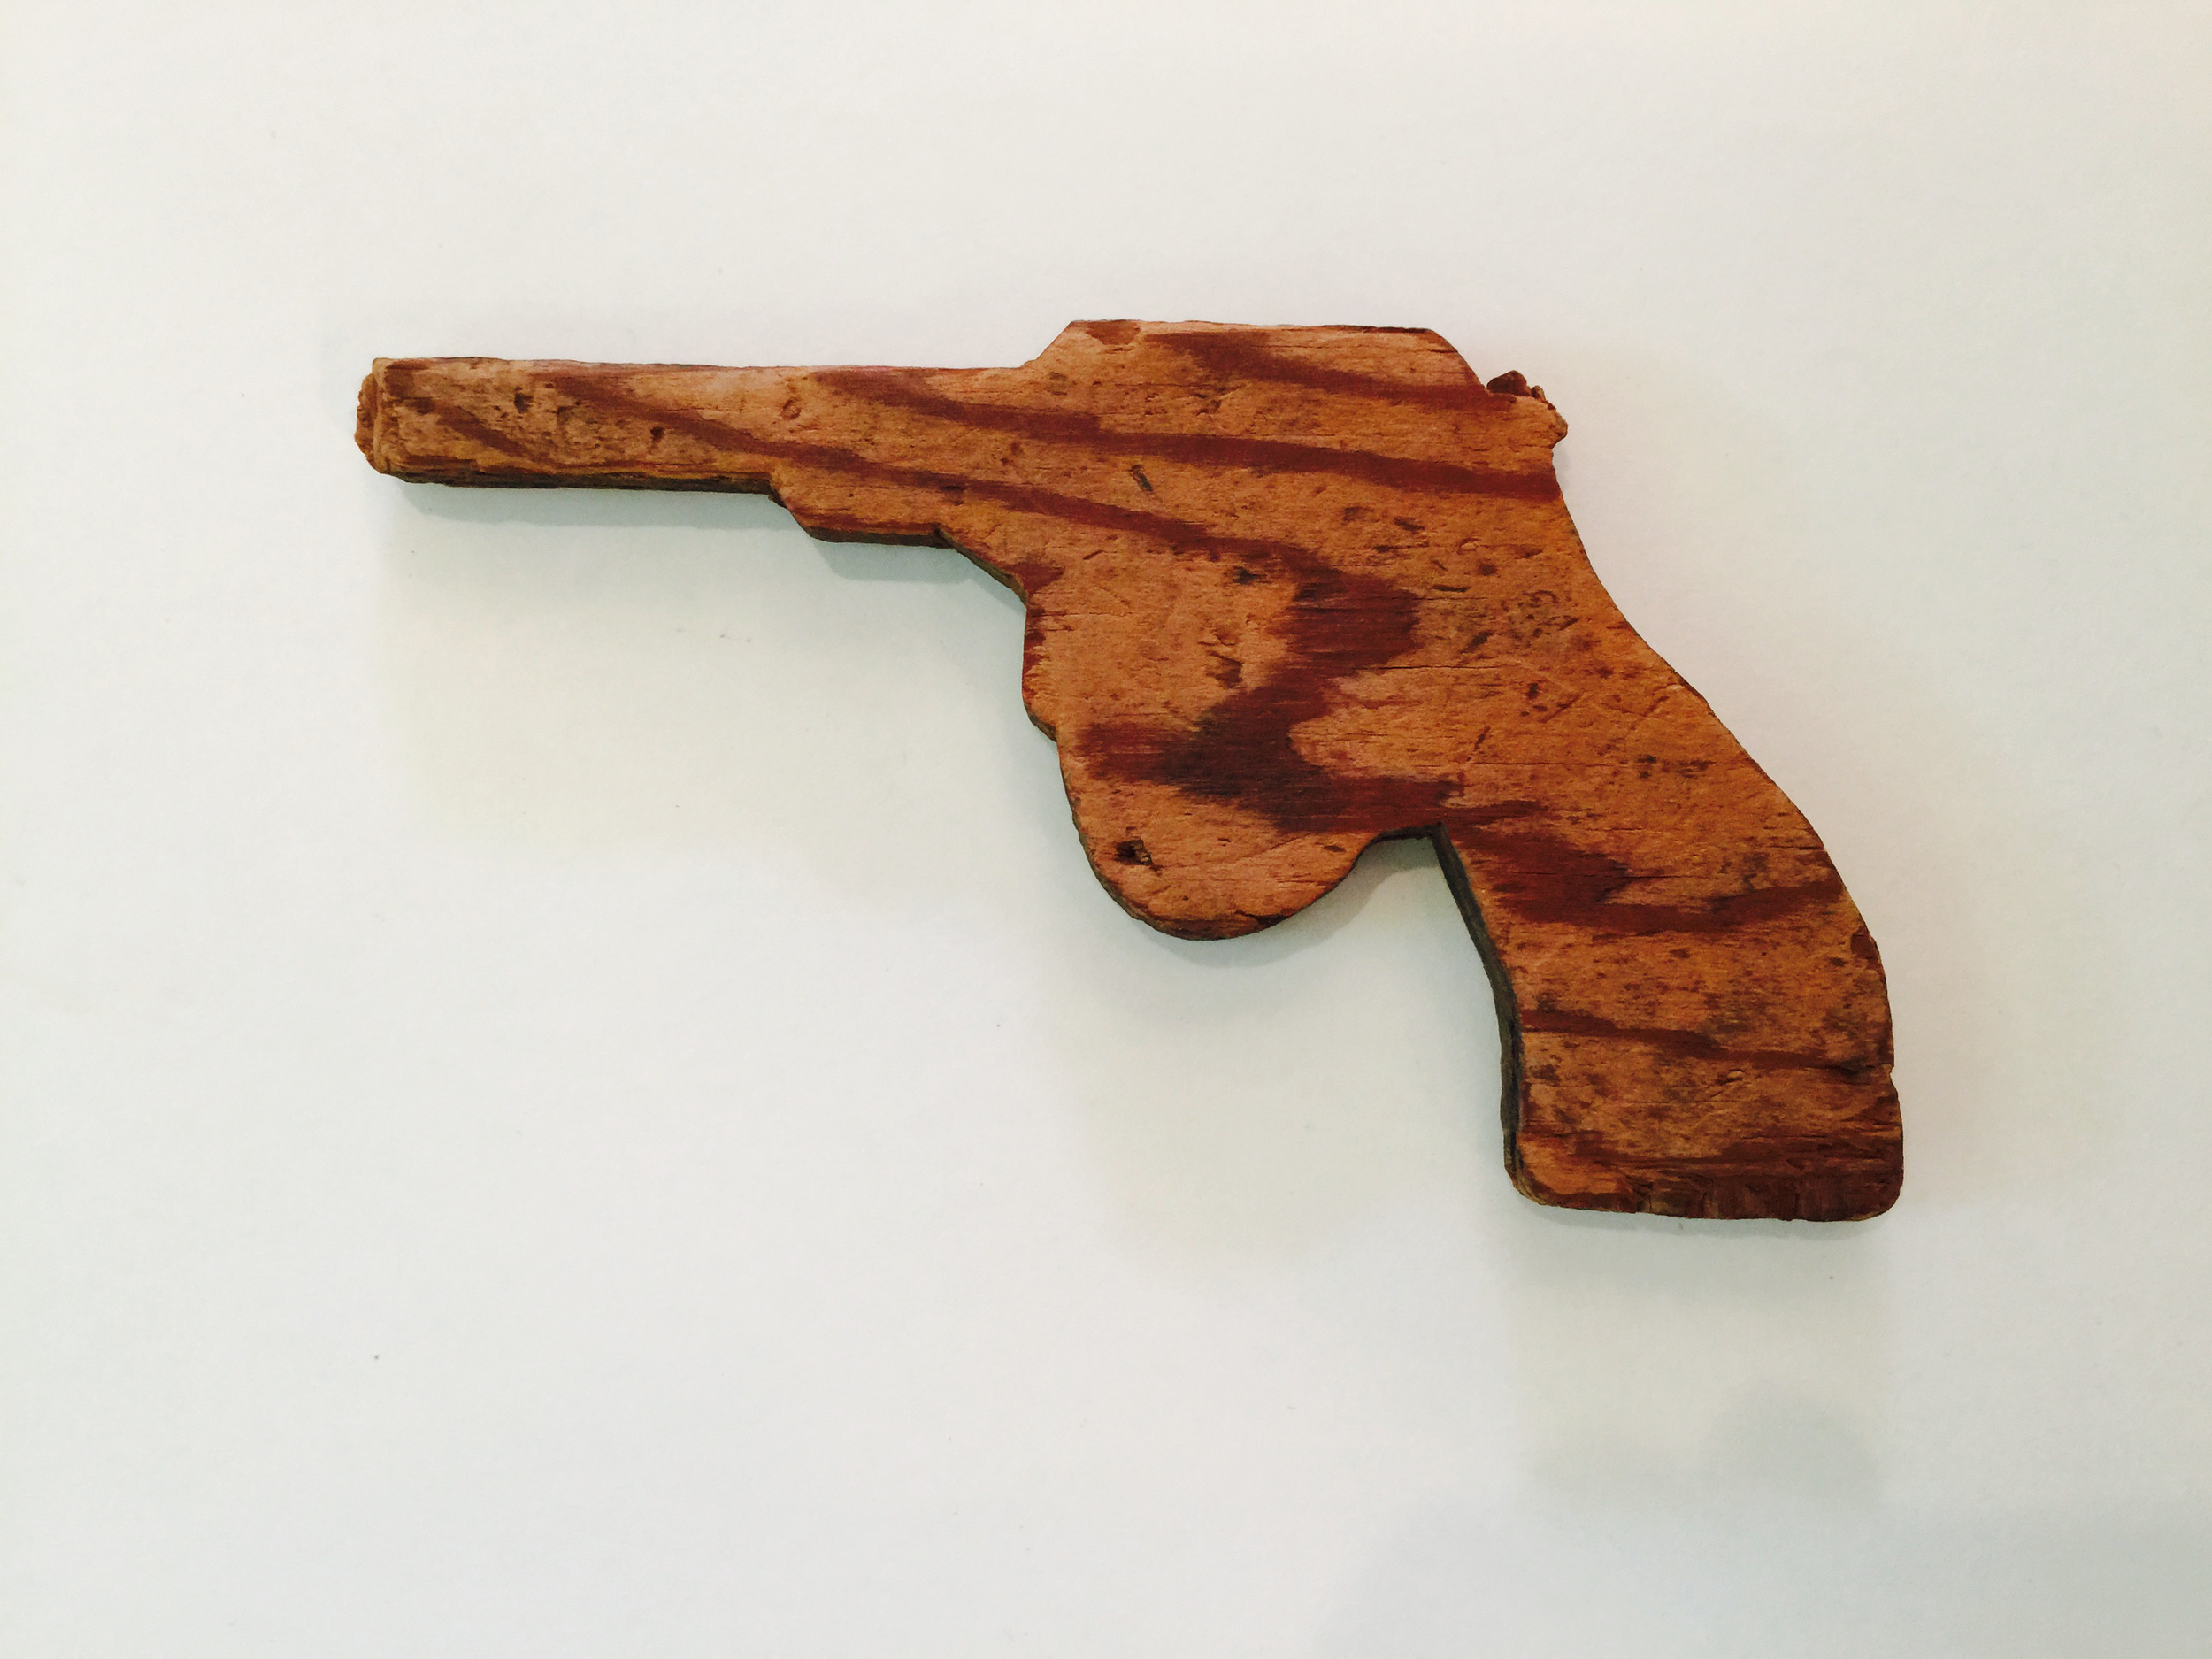 Wood Grain Gun.jpg